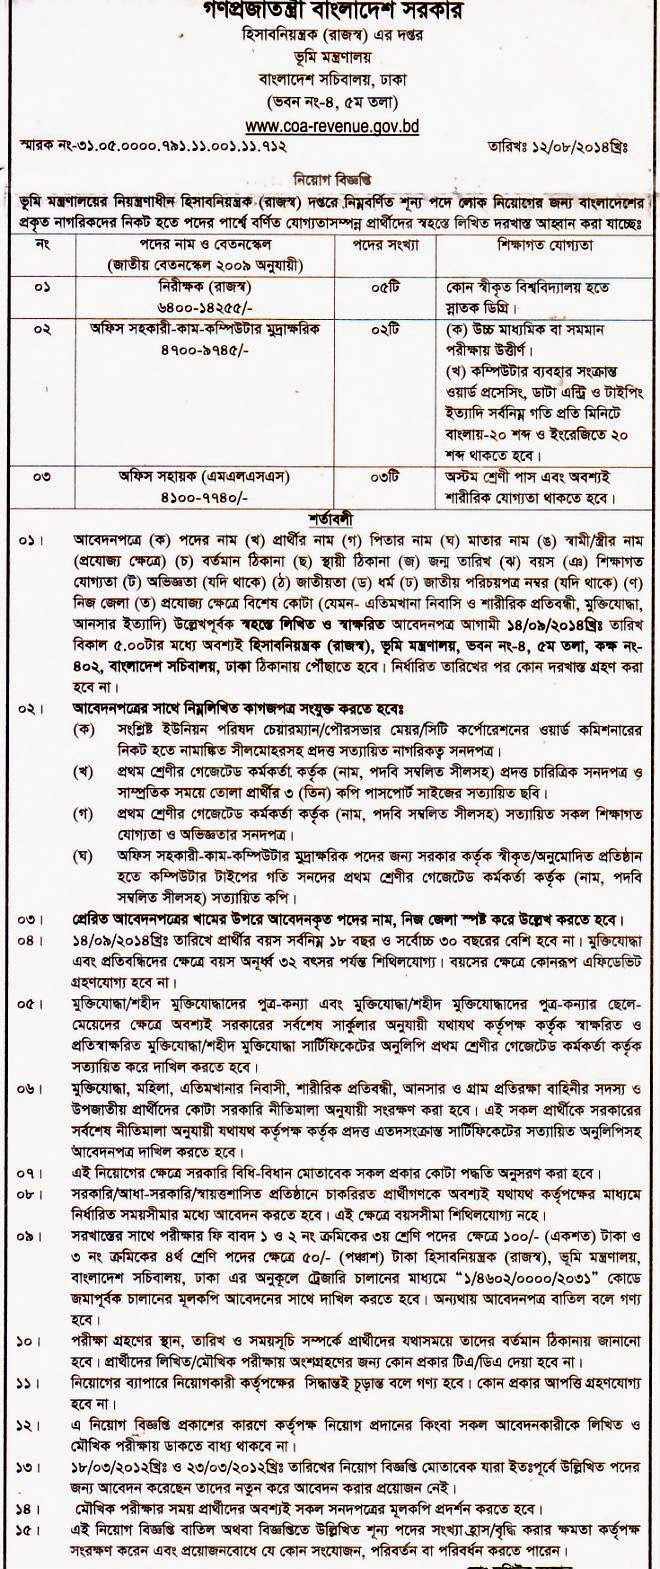 Bangladesh  Controller of Accounts (Revenue) Vacancy 2014